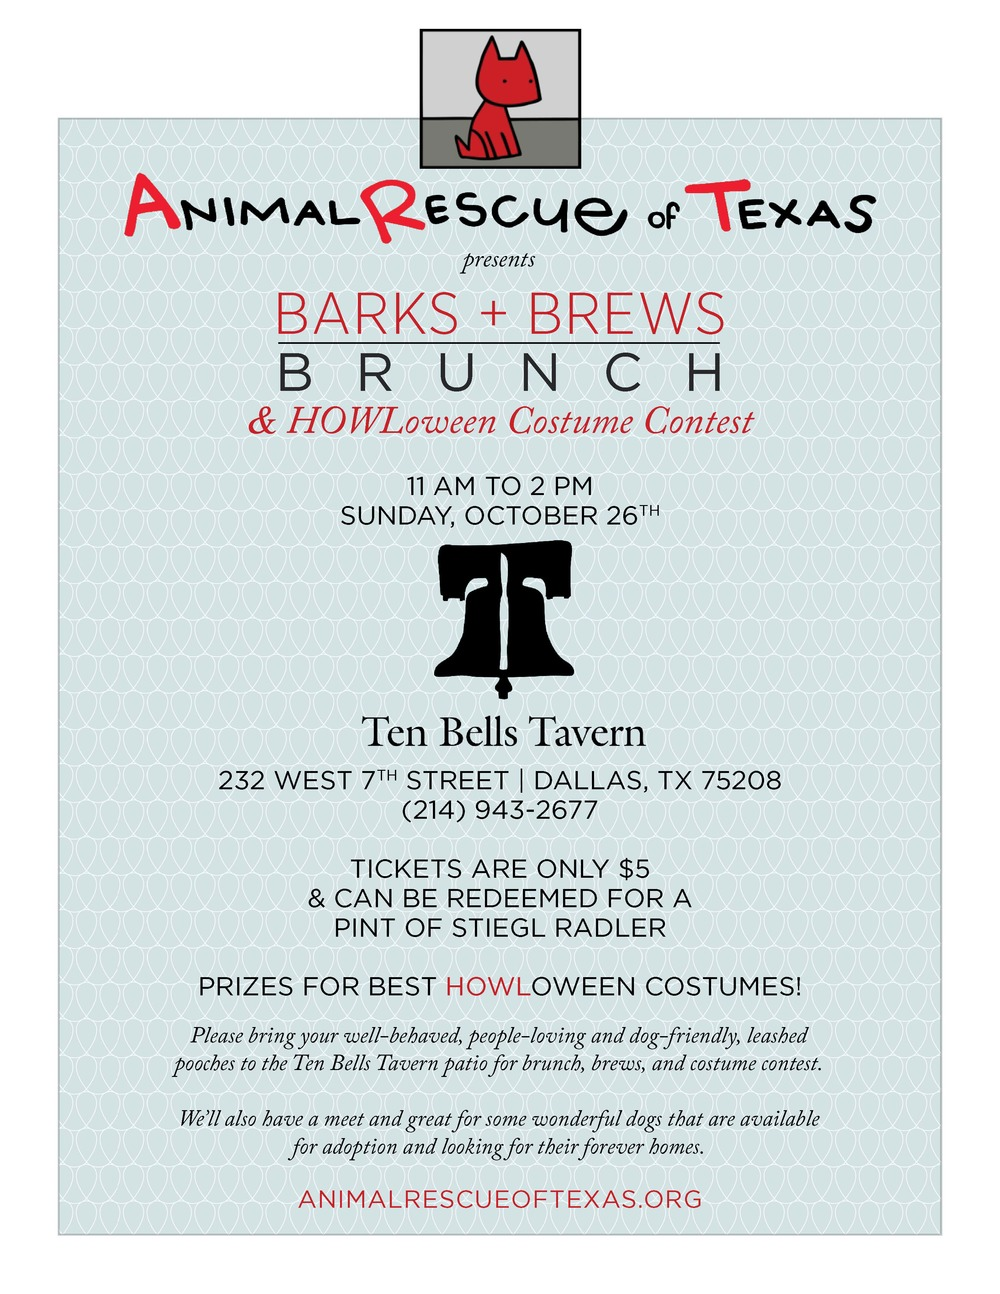 Animal Rescue of Texas - Barks + Brews - Digital Flyer